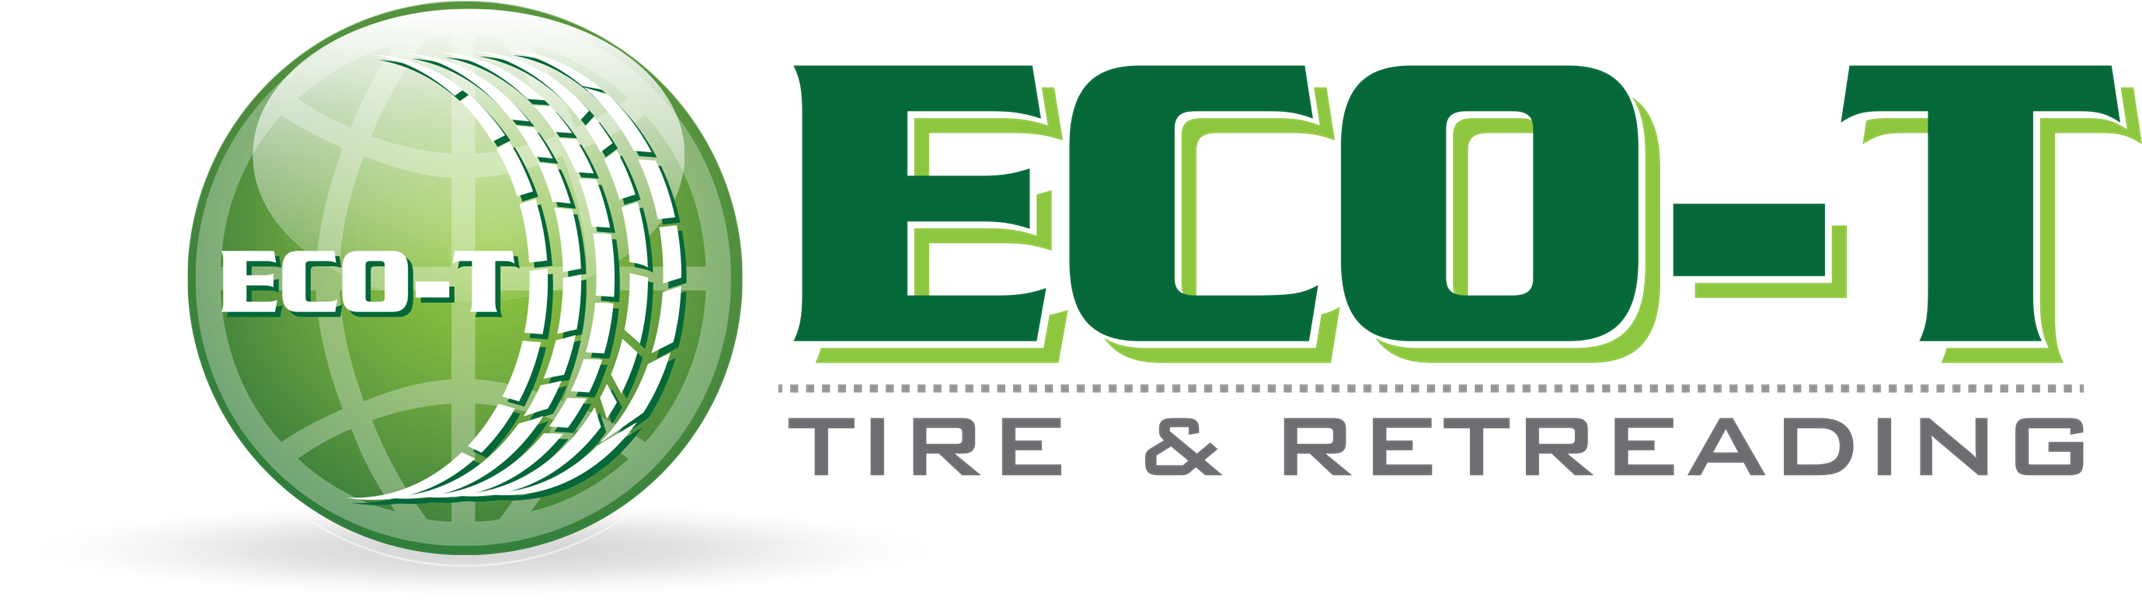 Eco-T Tire & Retreading, LLC